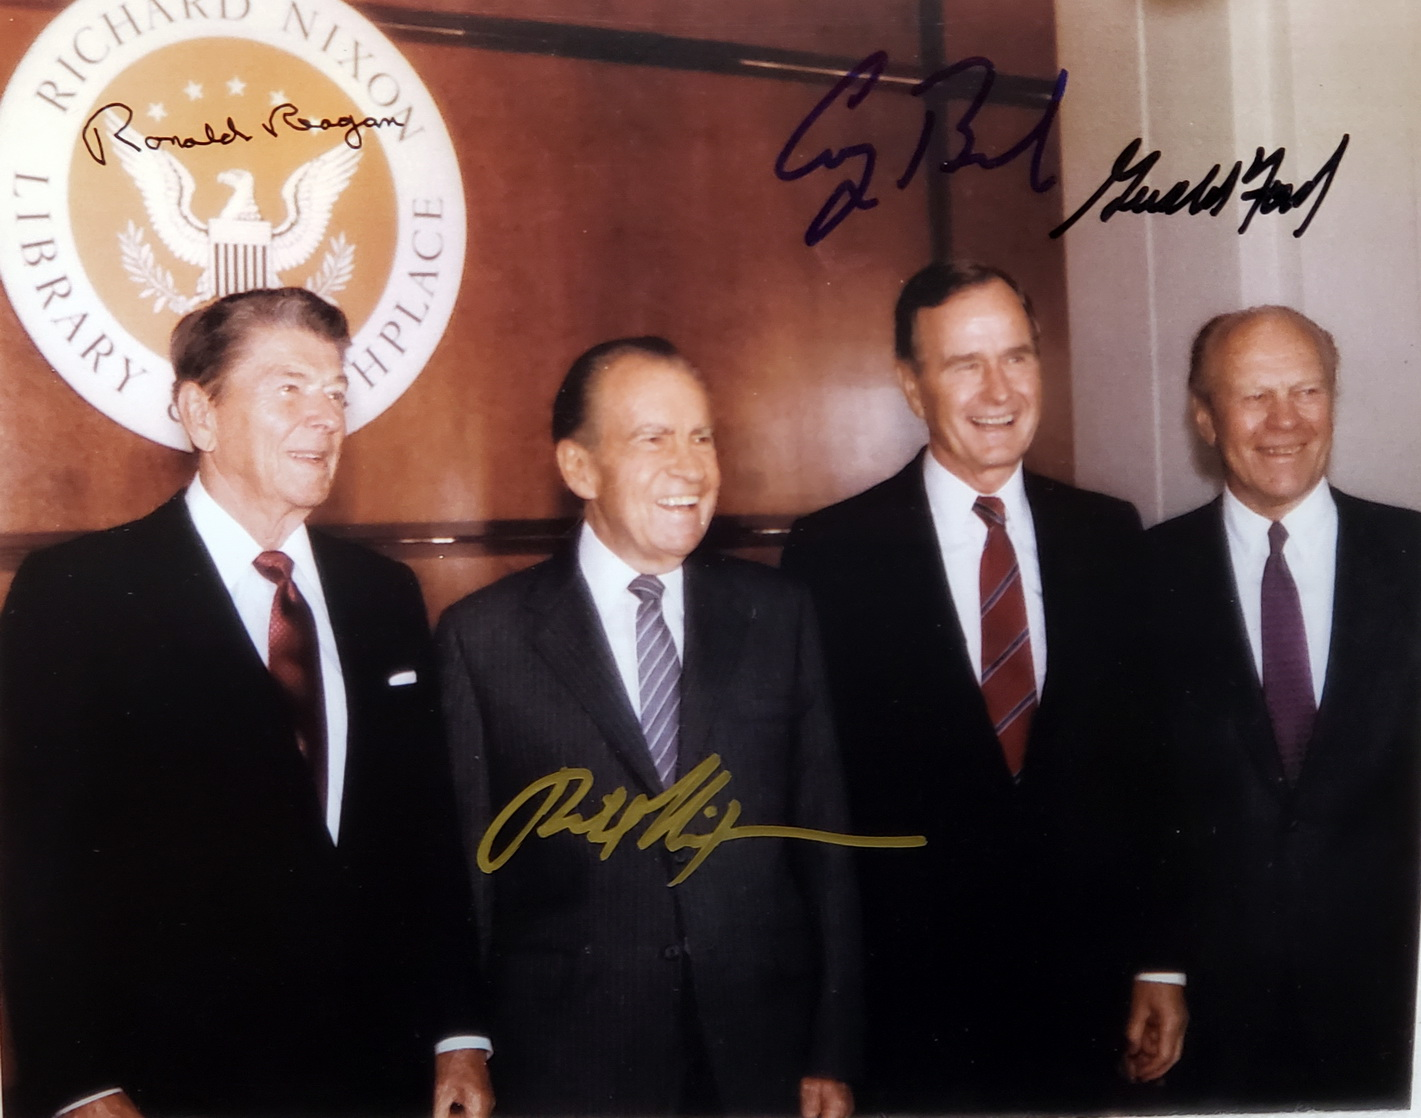 Image for 8 x10 inch color Photograph of Ronald Reagan, Richard Nixon, George Bush, and Gerald Ford at the opening of the Richard Nixon Library and Birthplace, Signed By Different Pens By each of the Four Presidents